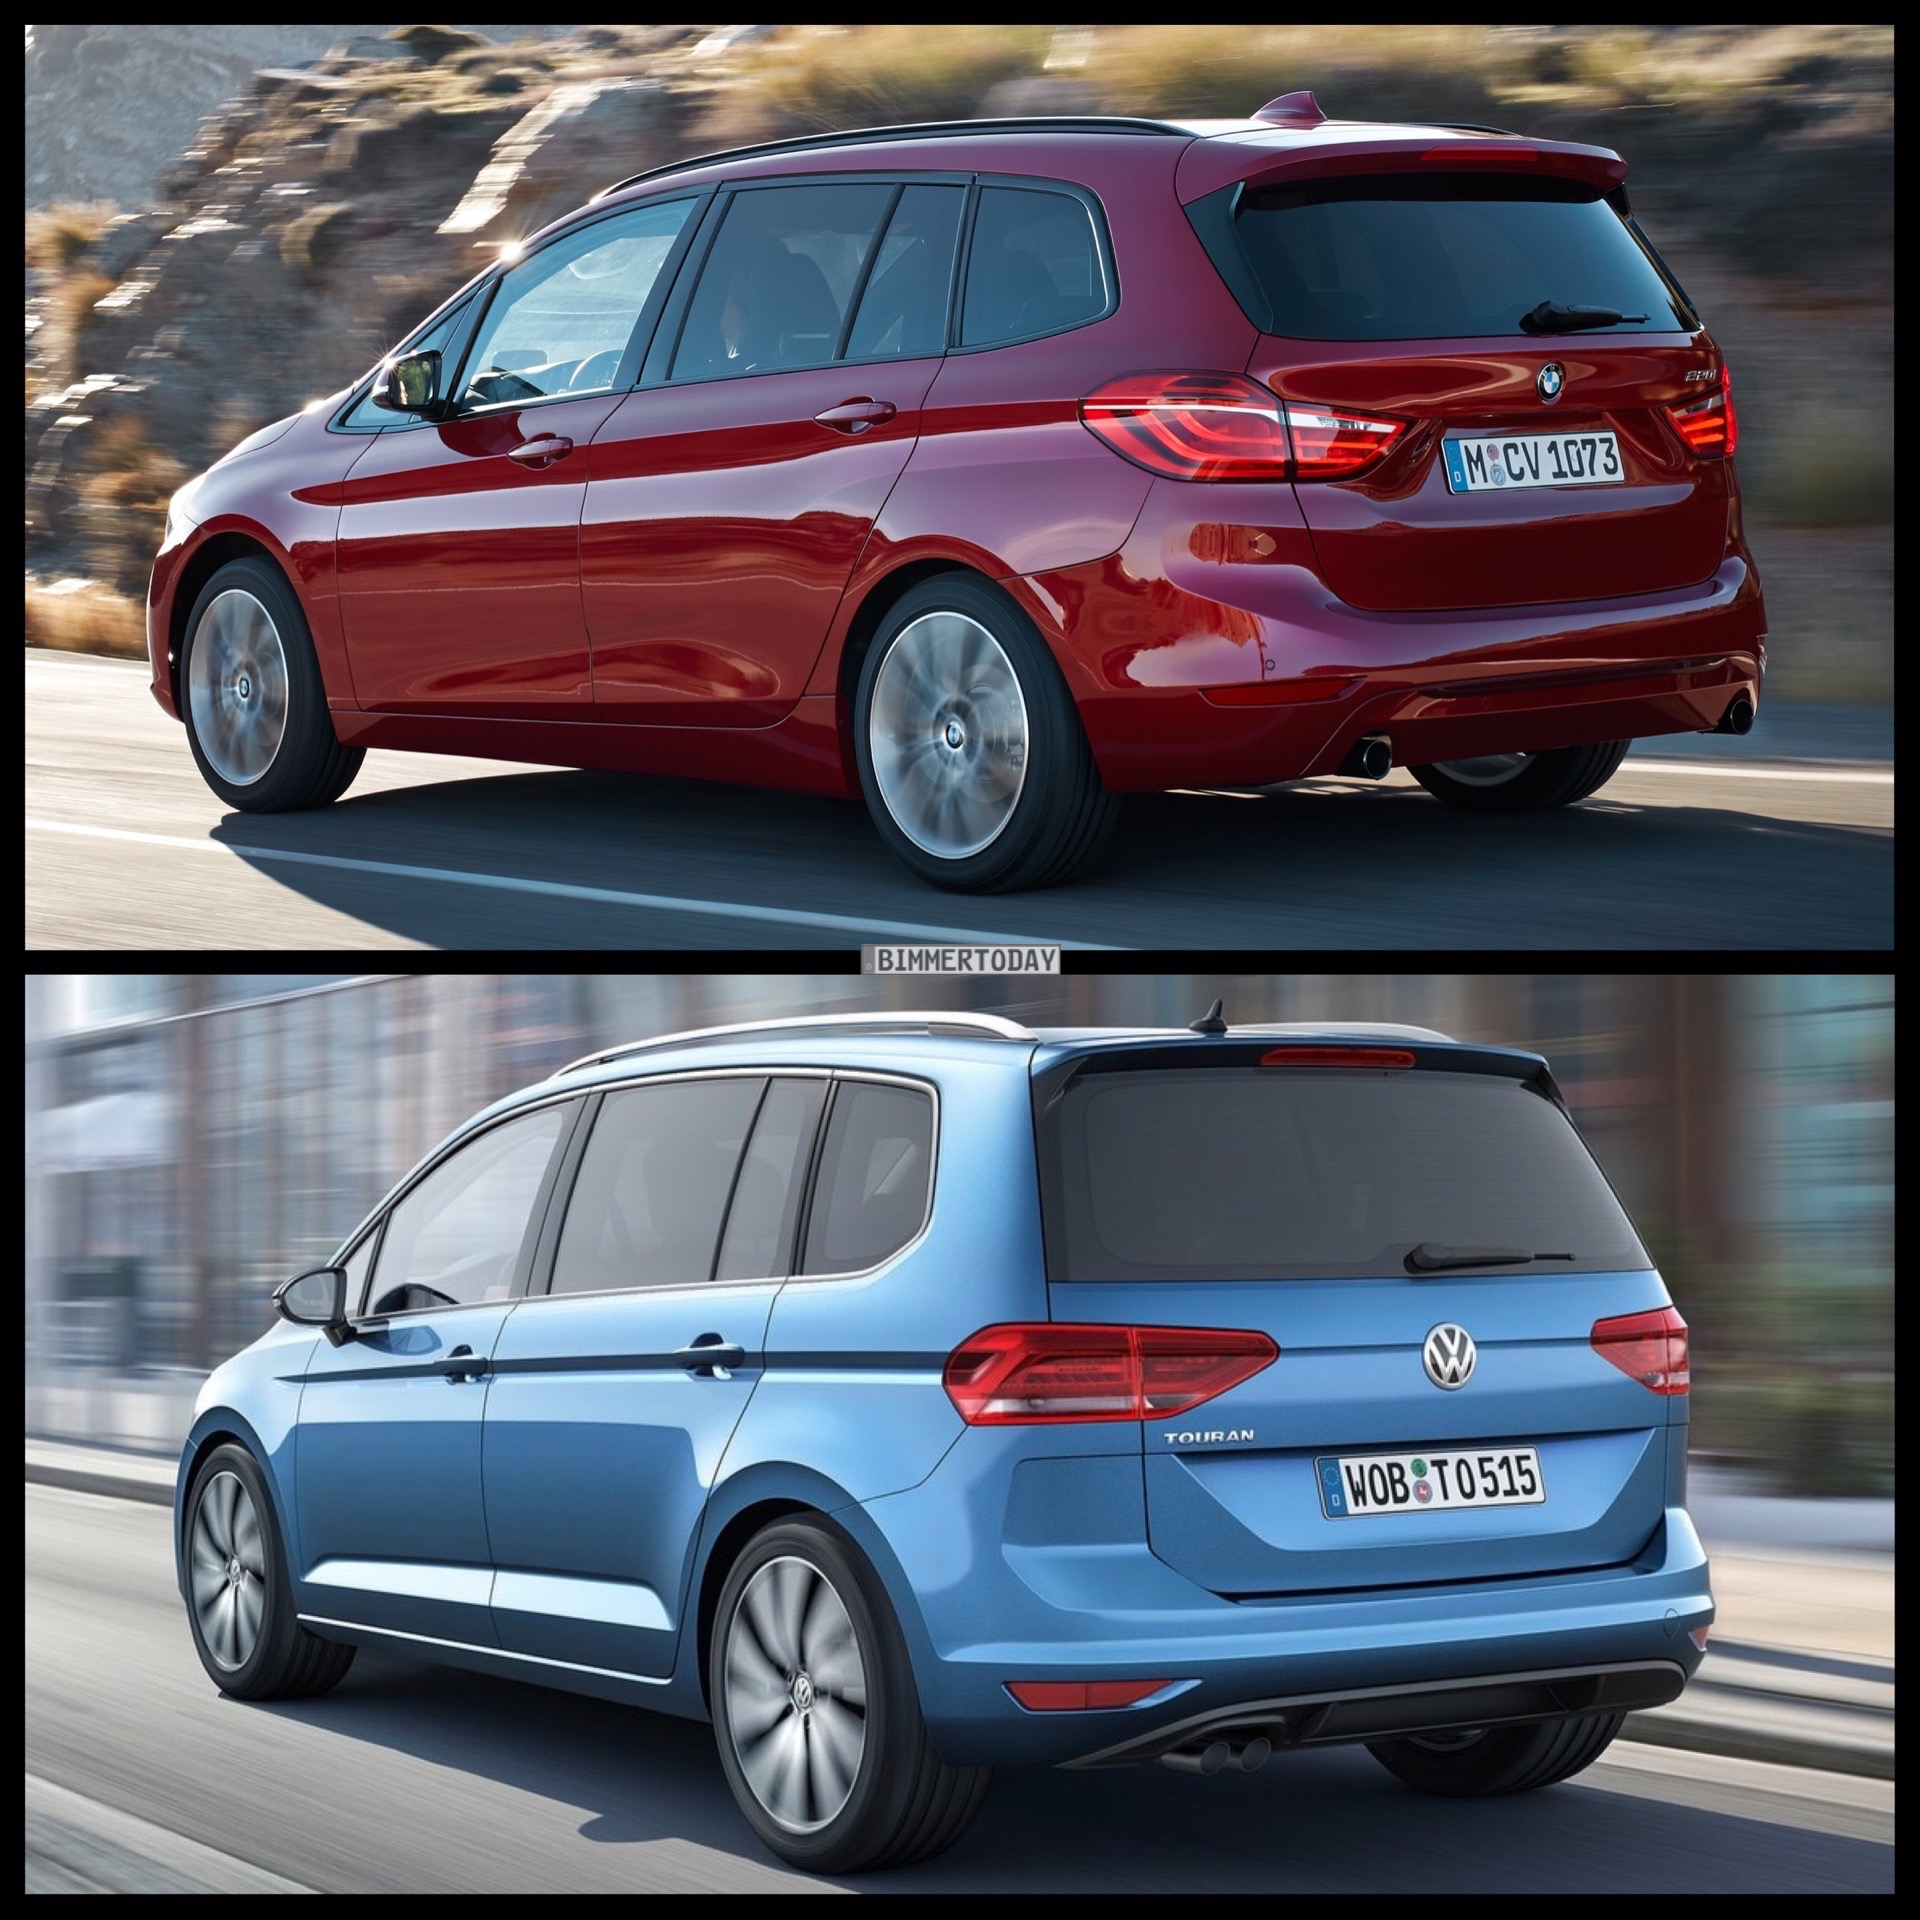 2015 volkswagen touran 1t pictures information and specs auto. Black Bedroom Furniture Sets. Home Design Ideas